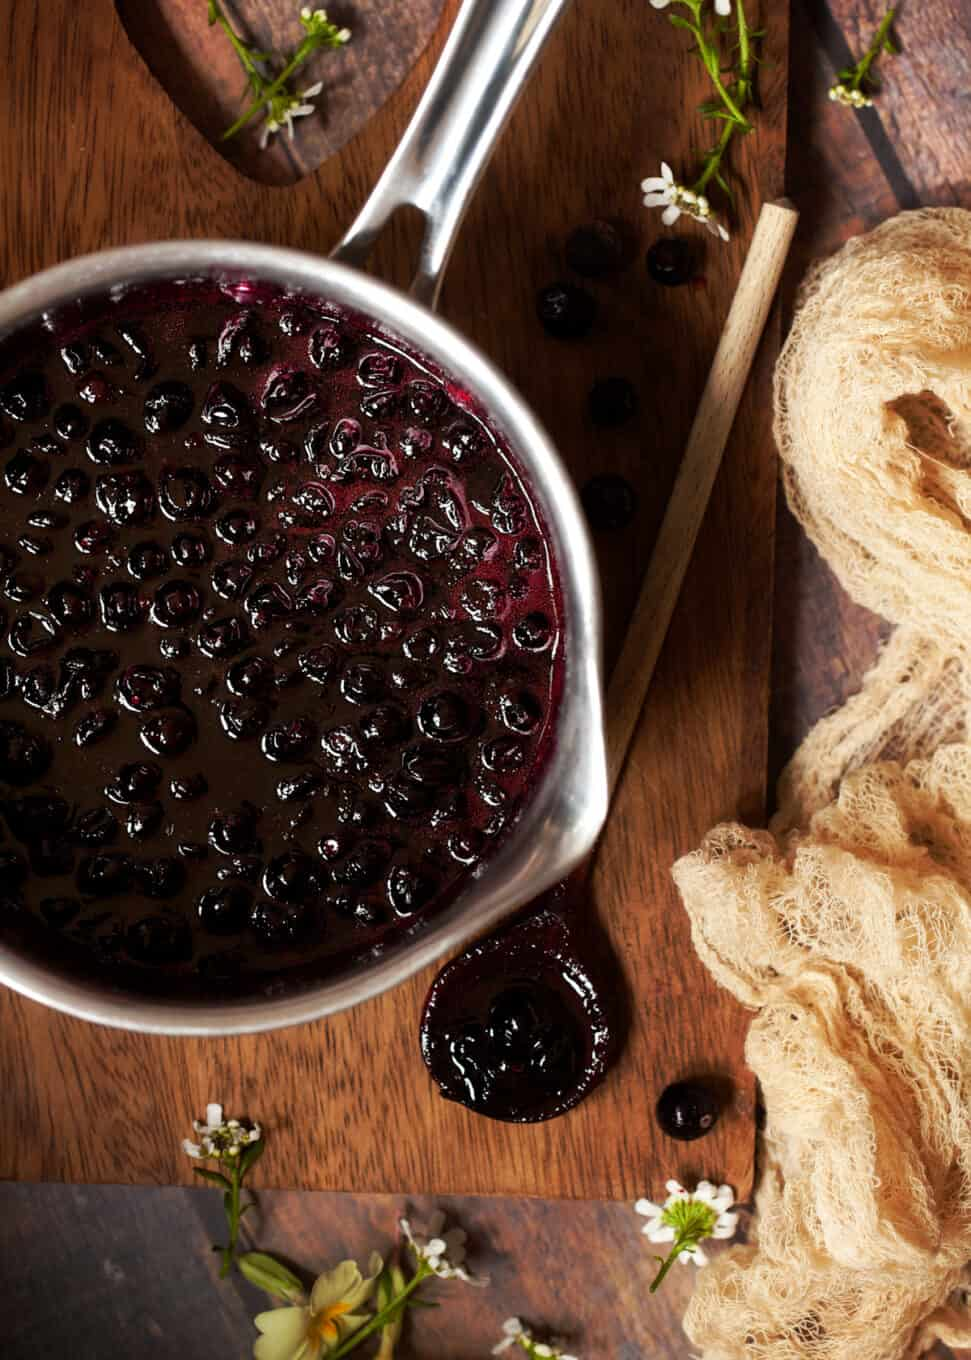 blackcurrant compote freshly cooked in a pan